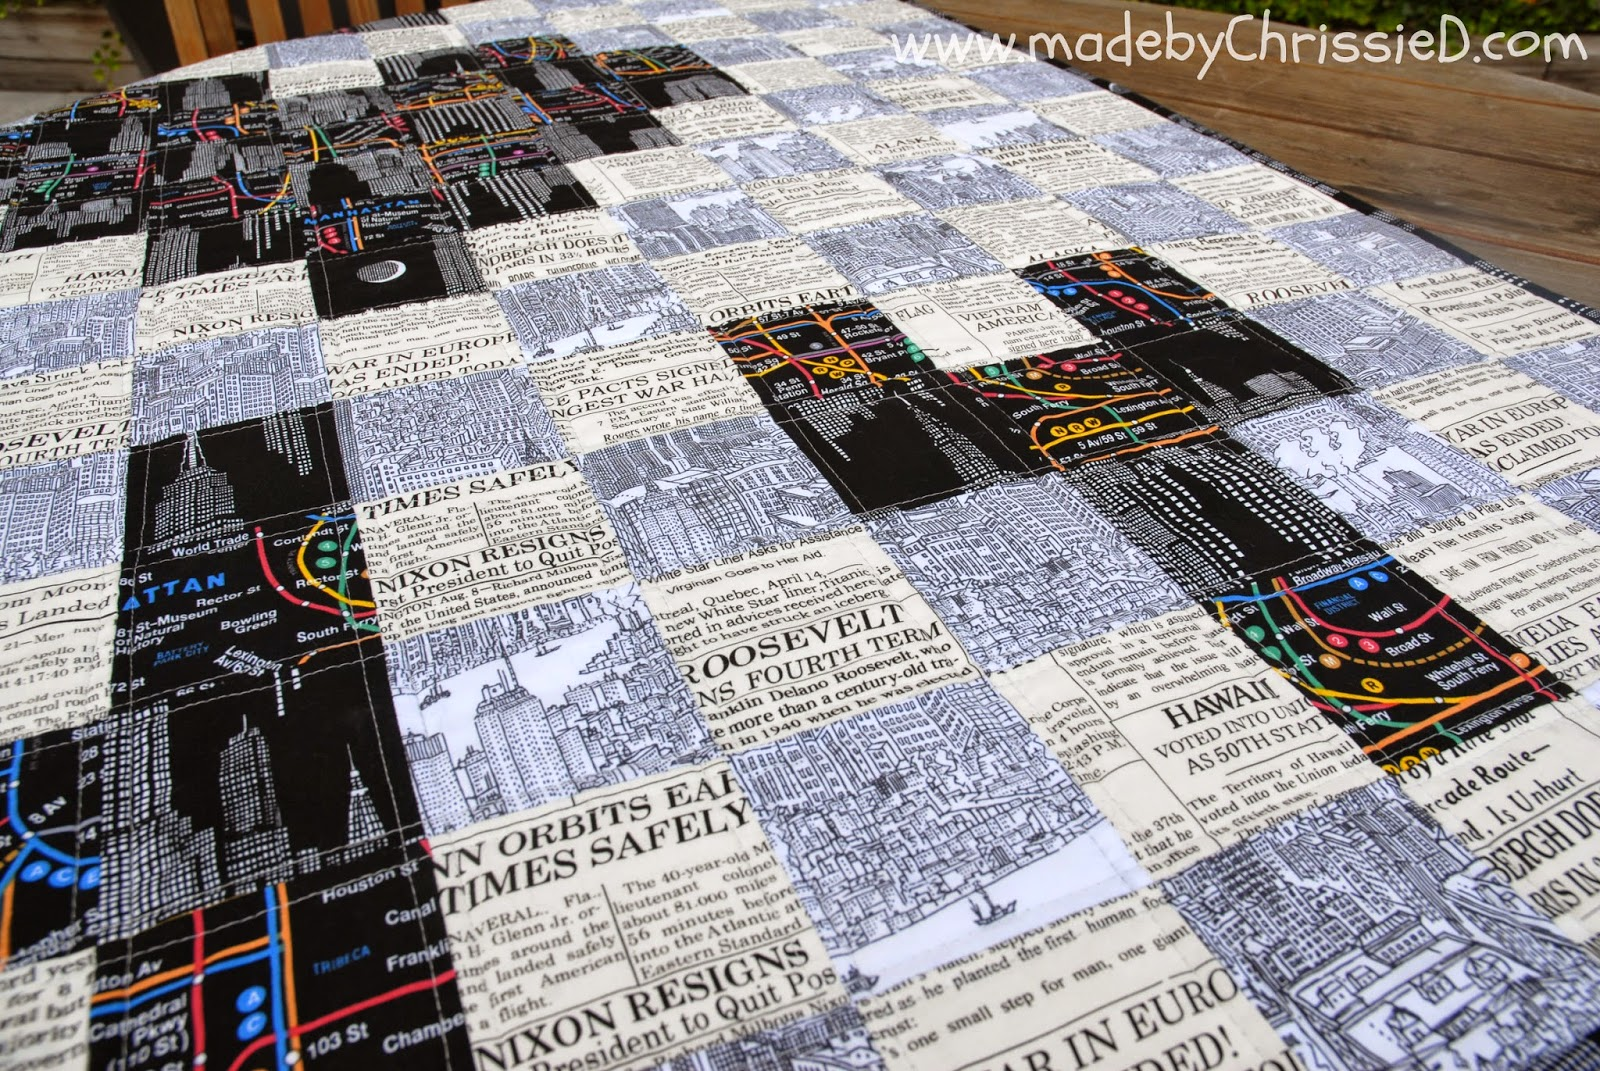 Could You Live Here? Quilt by www.madebyChrissieD.com